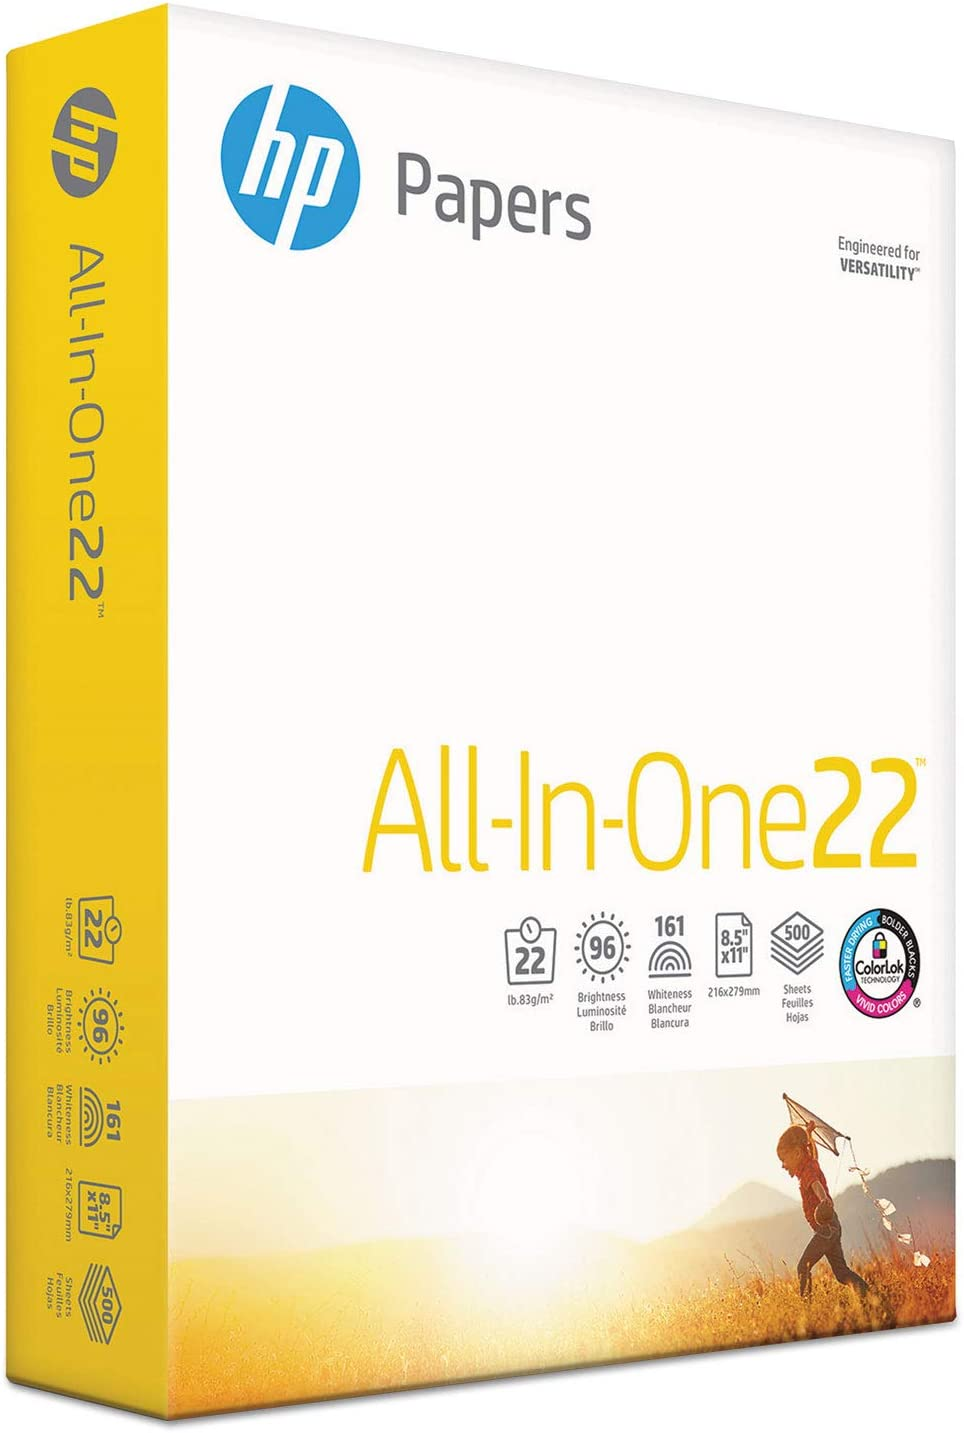 HP All-in-One Paper, 96 Bright, 22 lb, 8-1/2 x 11, White, 500 Sheets/RM (207010)